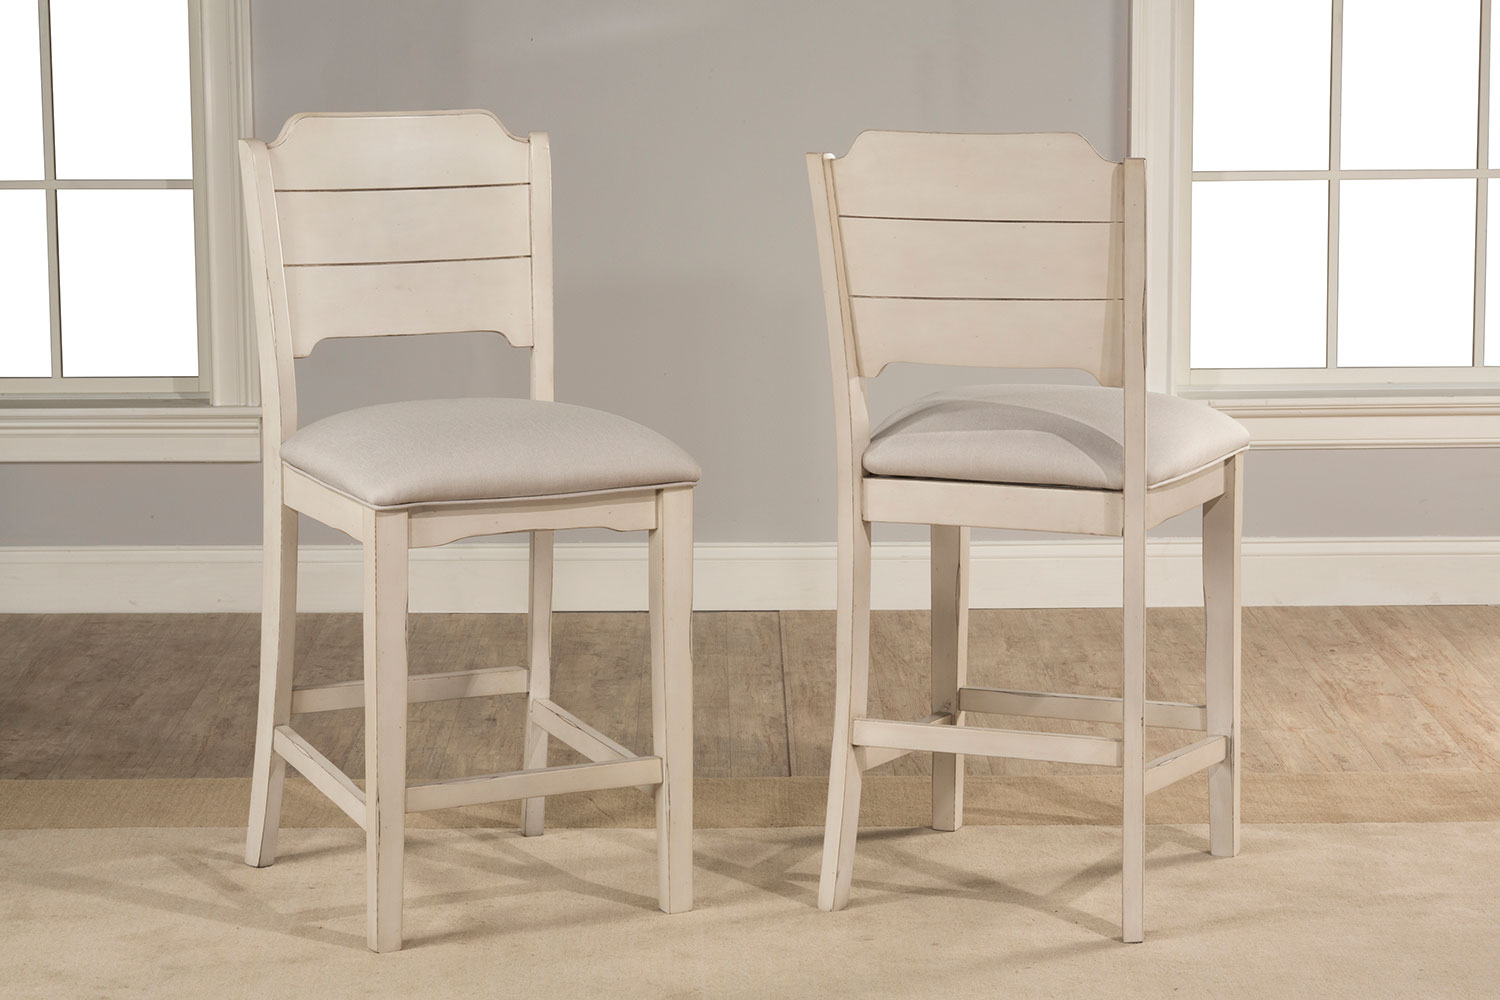 Hillsdale Clarion Non-Swivel Open Back Counter Height Stool - Sea White - Fog Fabric